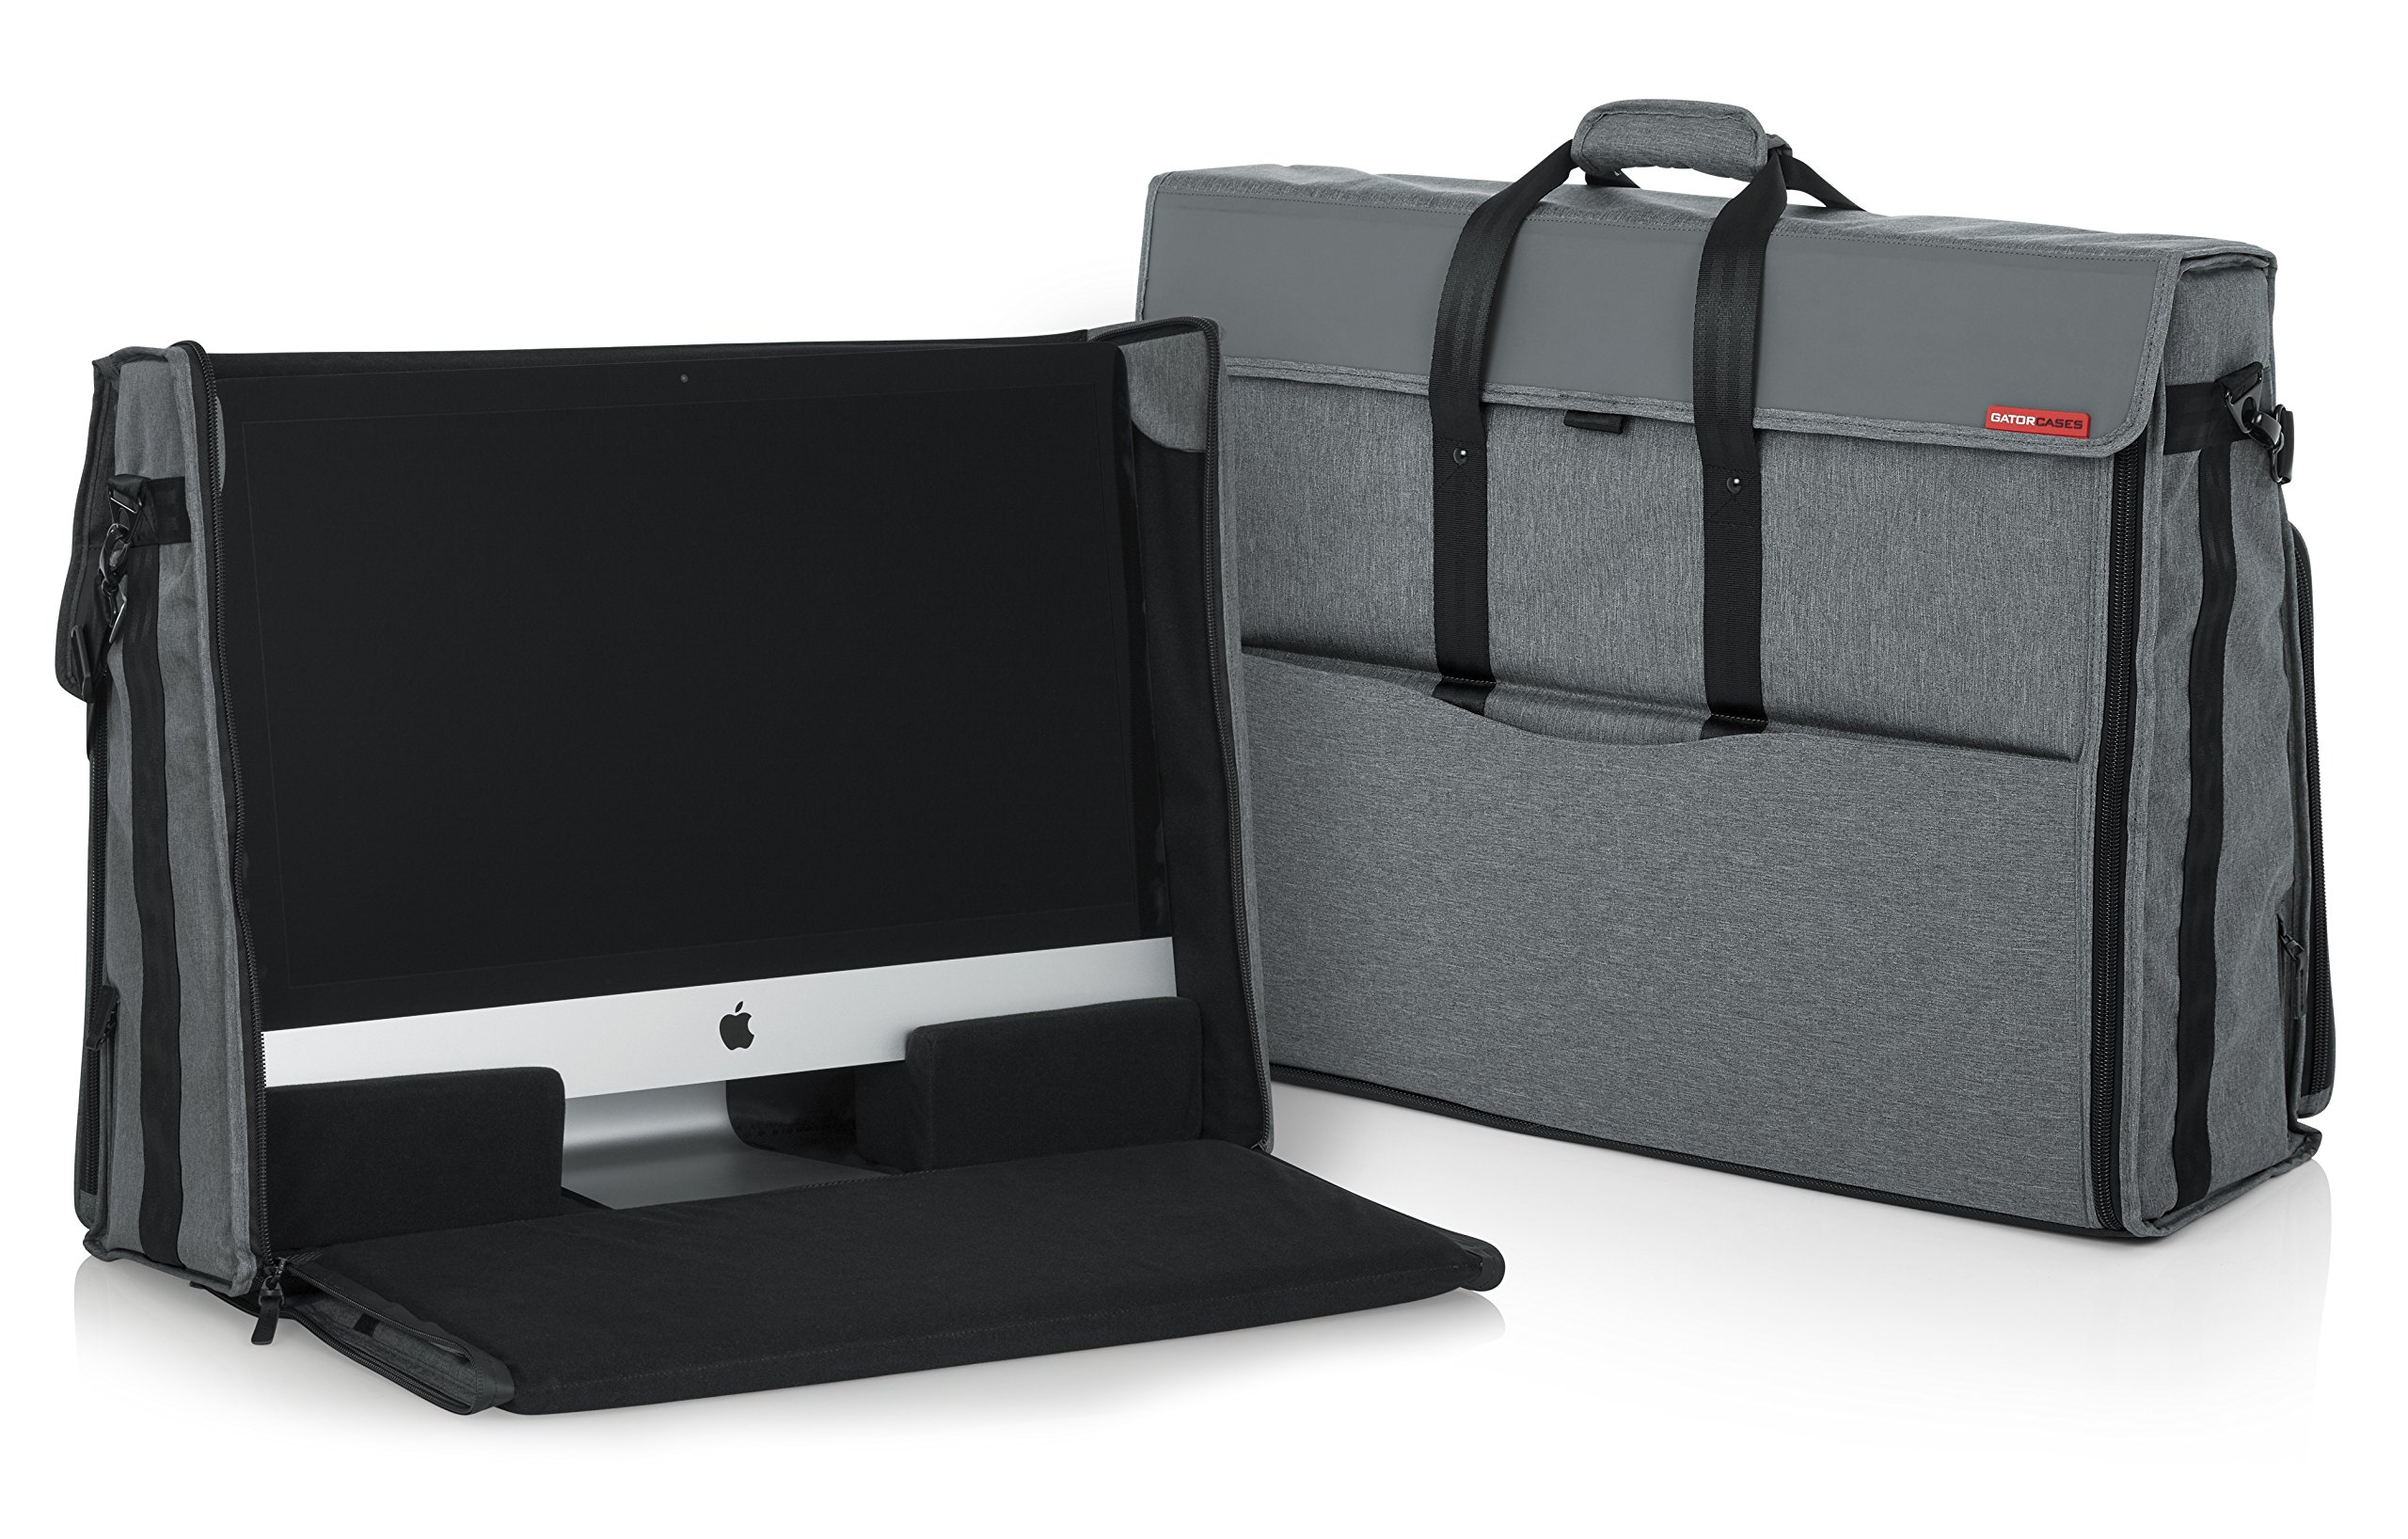 Gator Cases Creative Pro Series Nylon Carry Tote Bag for Apple 27'' iMac Desktop Computer (G-CPR-IM27) by Gator